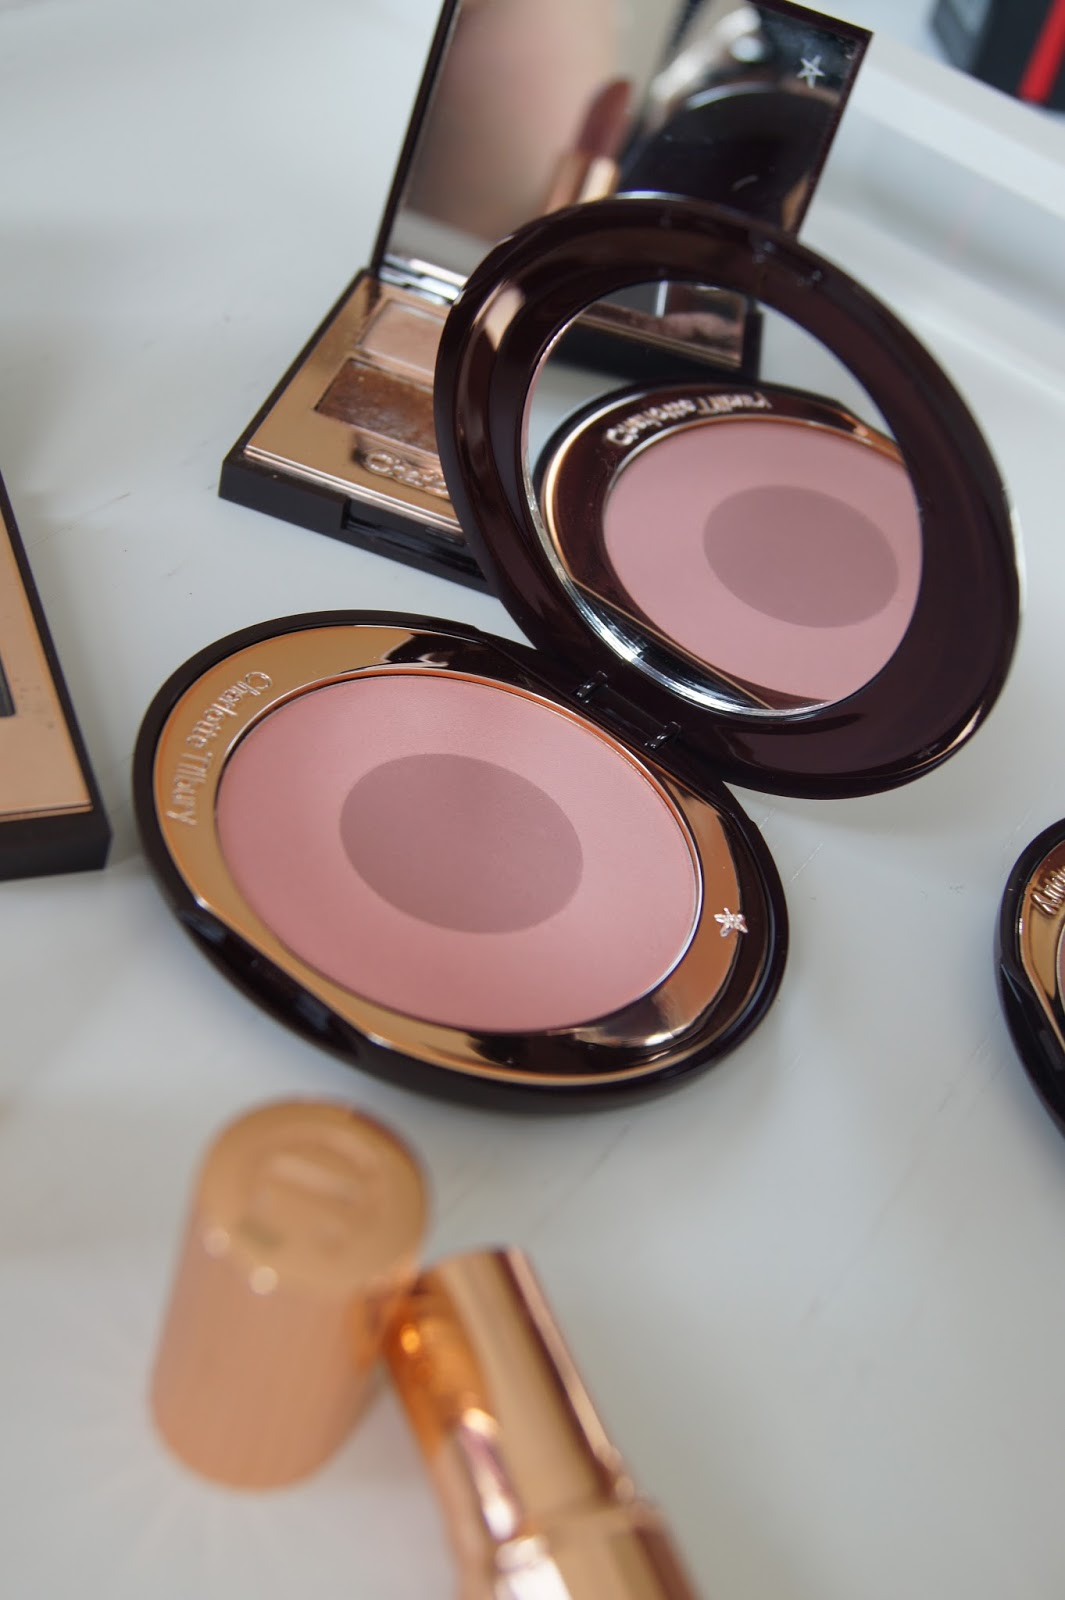 Charlotte Tilbury Cheek to Chic Swish and Pop blush in Sex on Fire review